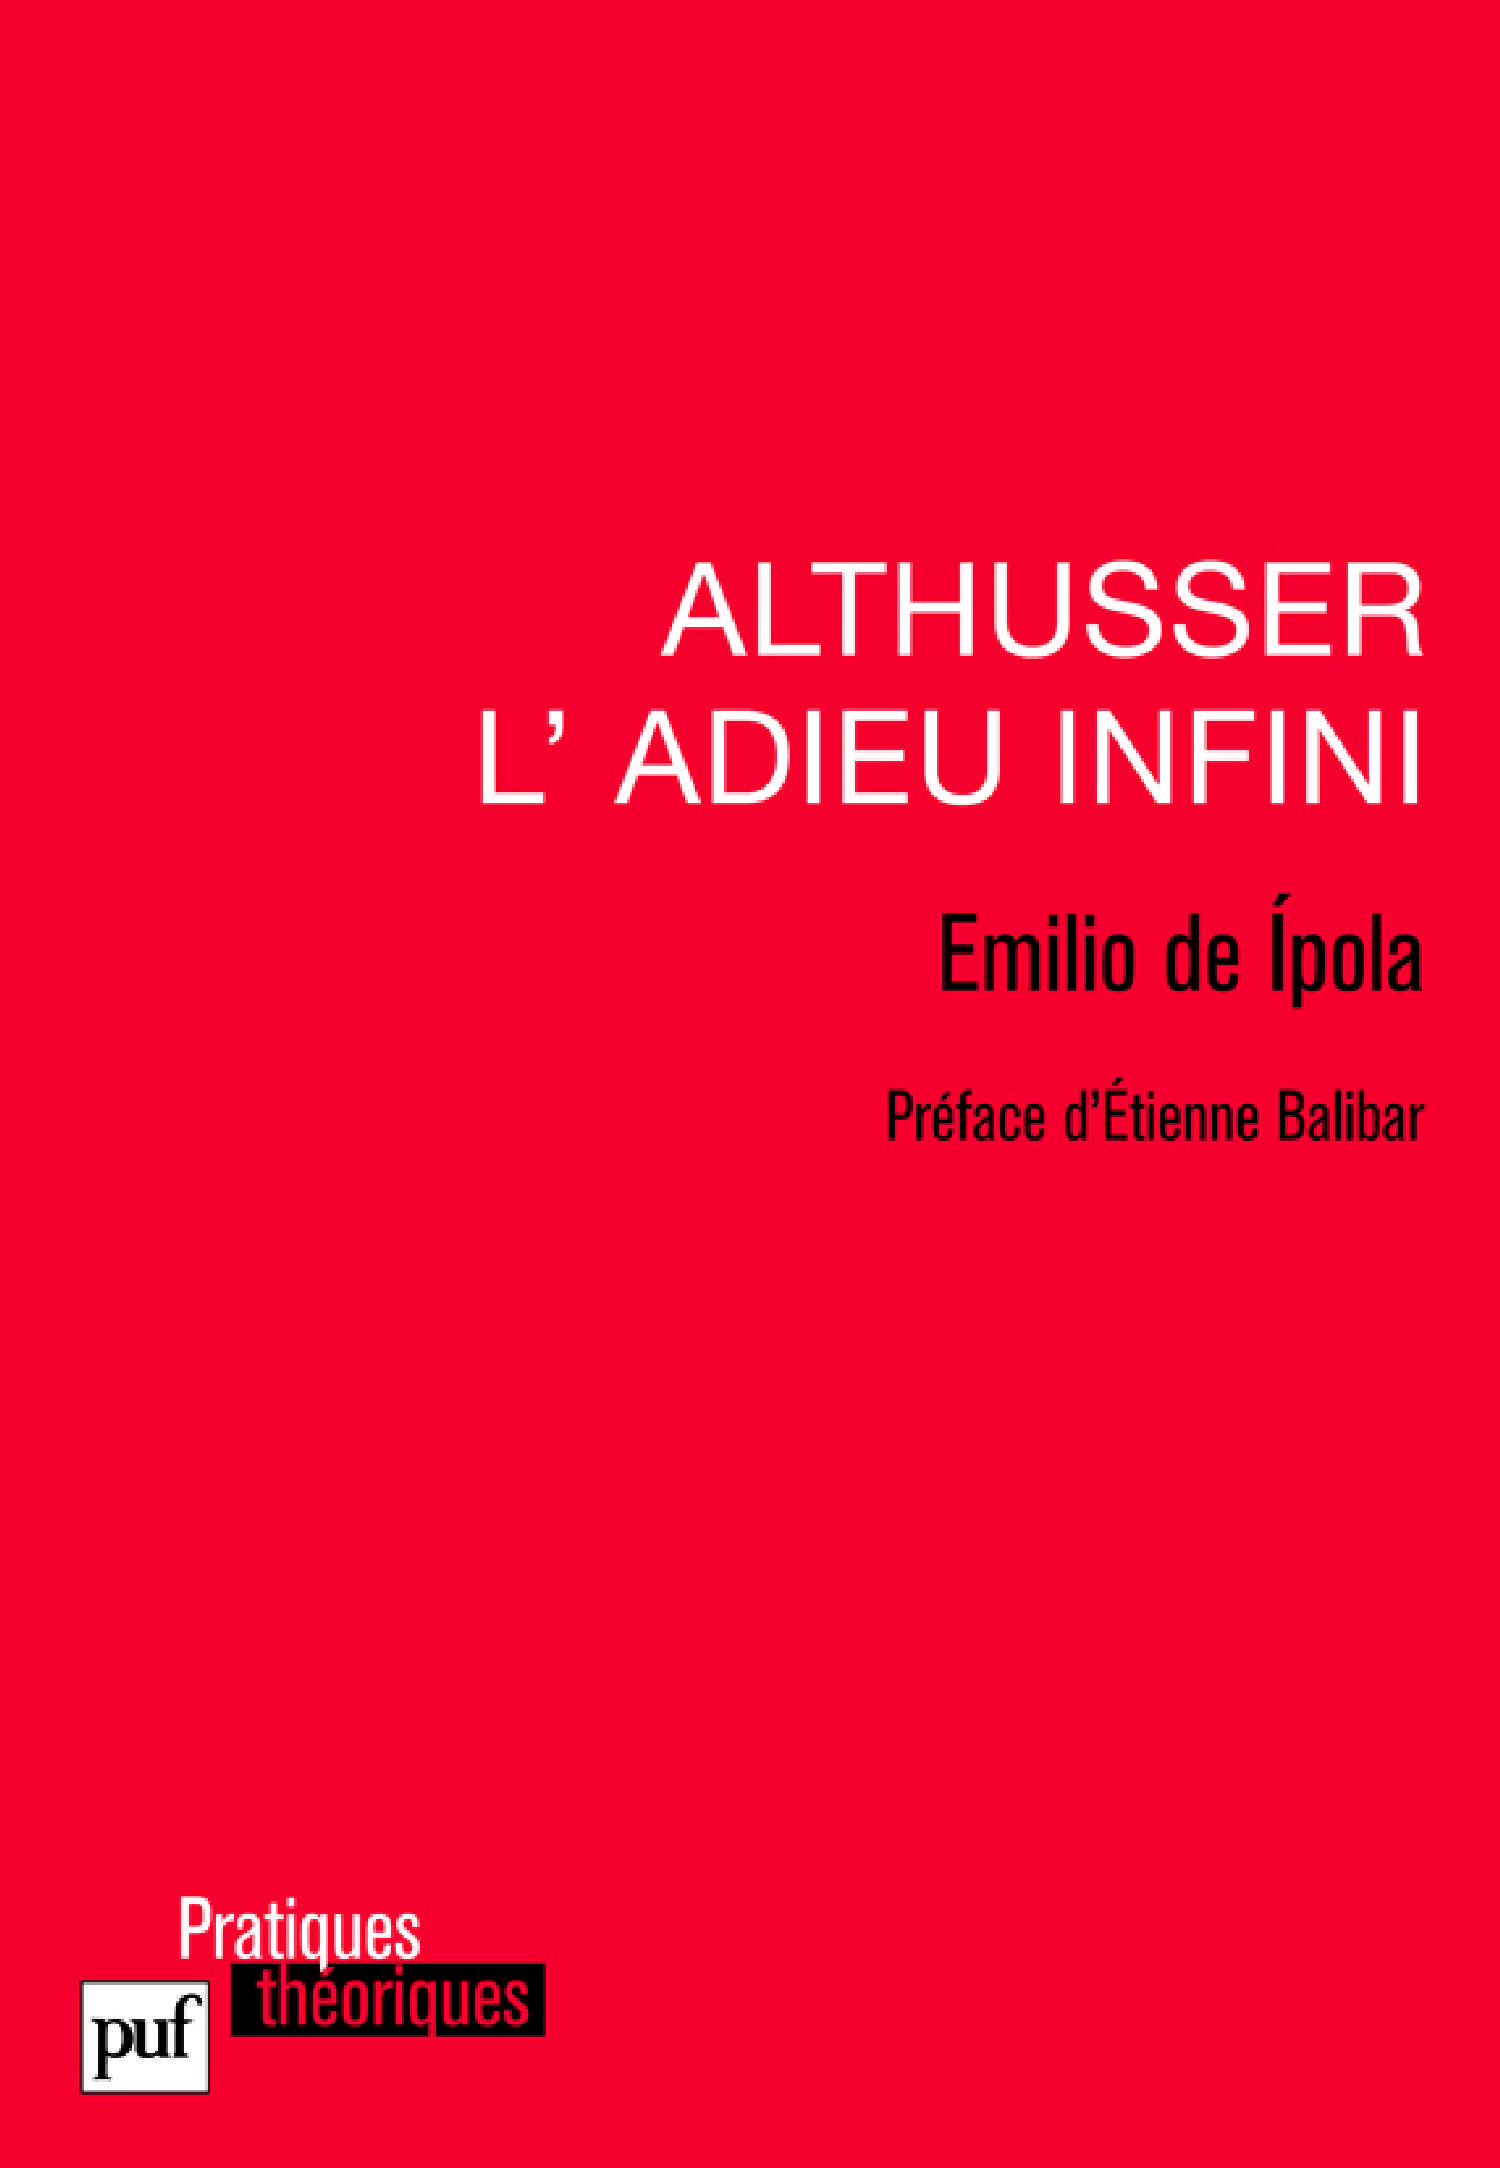 Althusser, l'adieu infini De Emilio de Ipola - Presses Universitaires de France